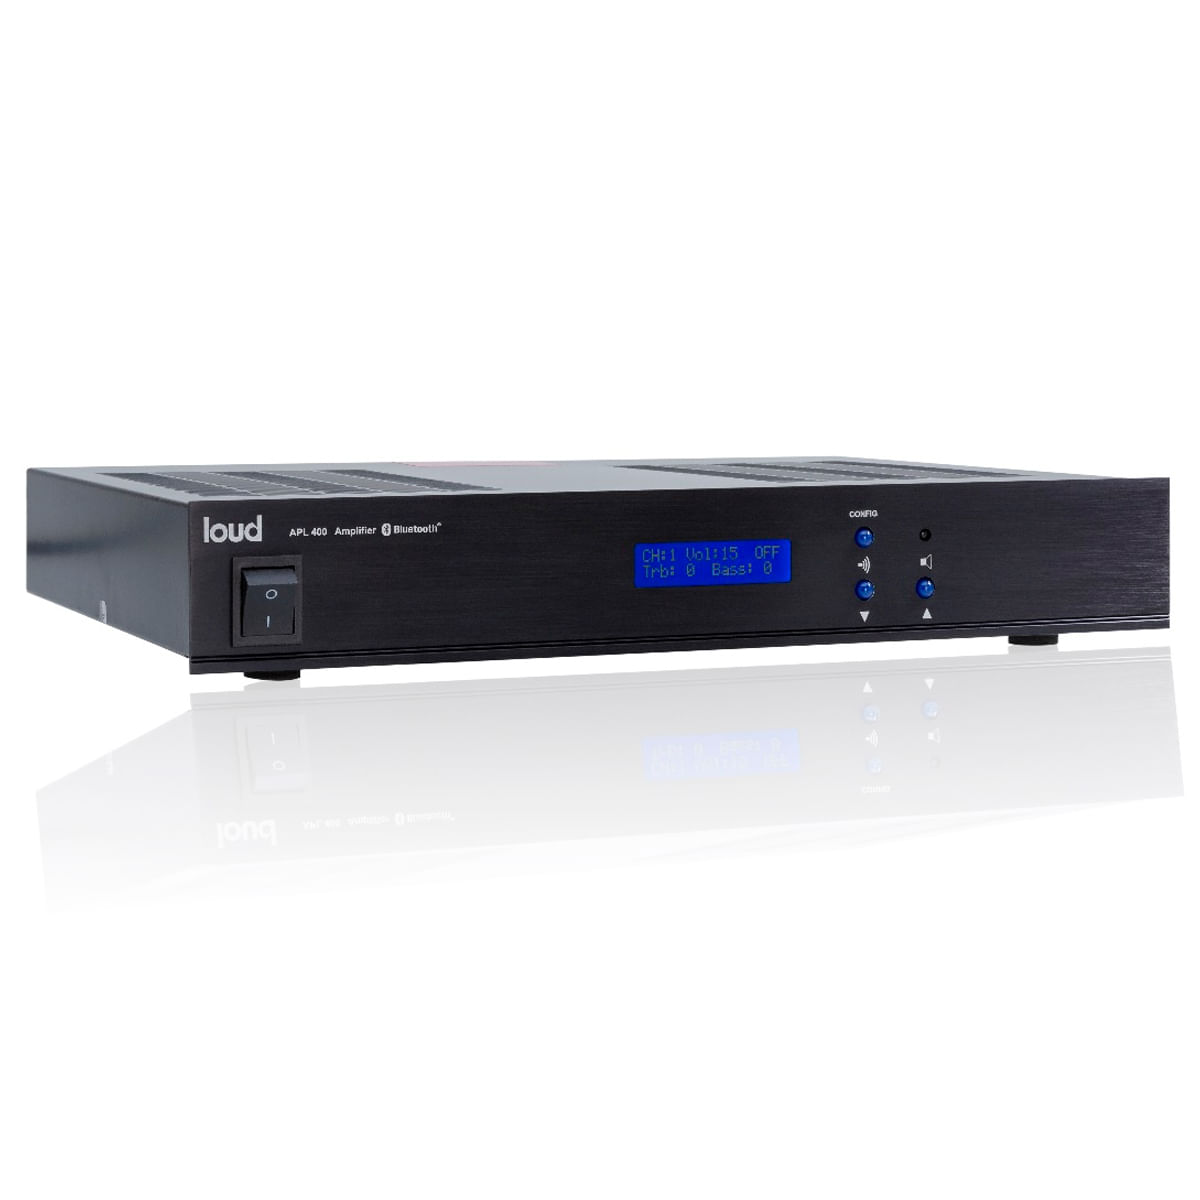 Loud-APL-400-BT-Amplificador-Estereo-Bluetooth-Entrada-Optica-400W-Principal